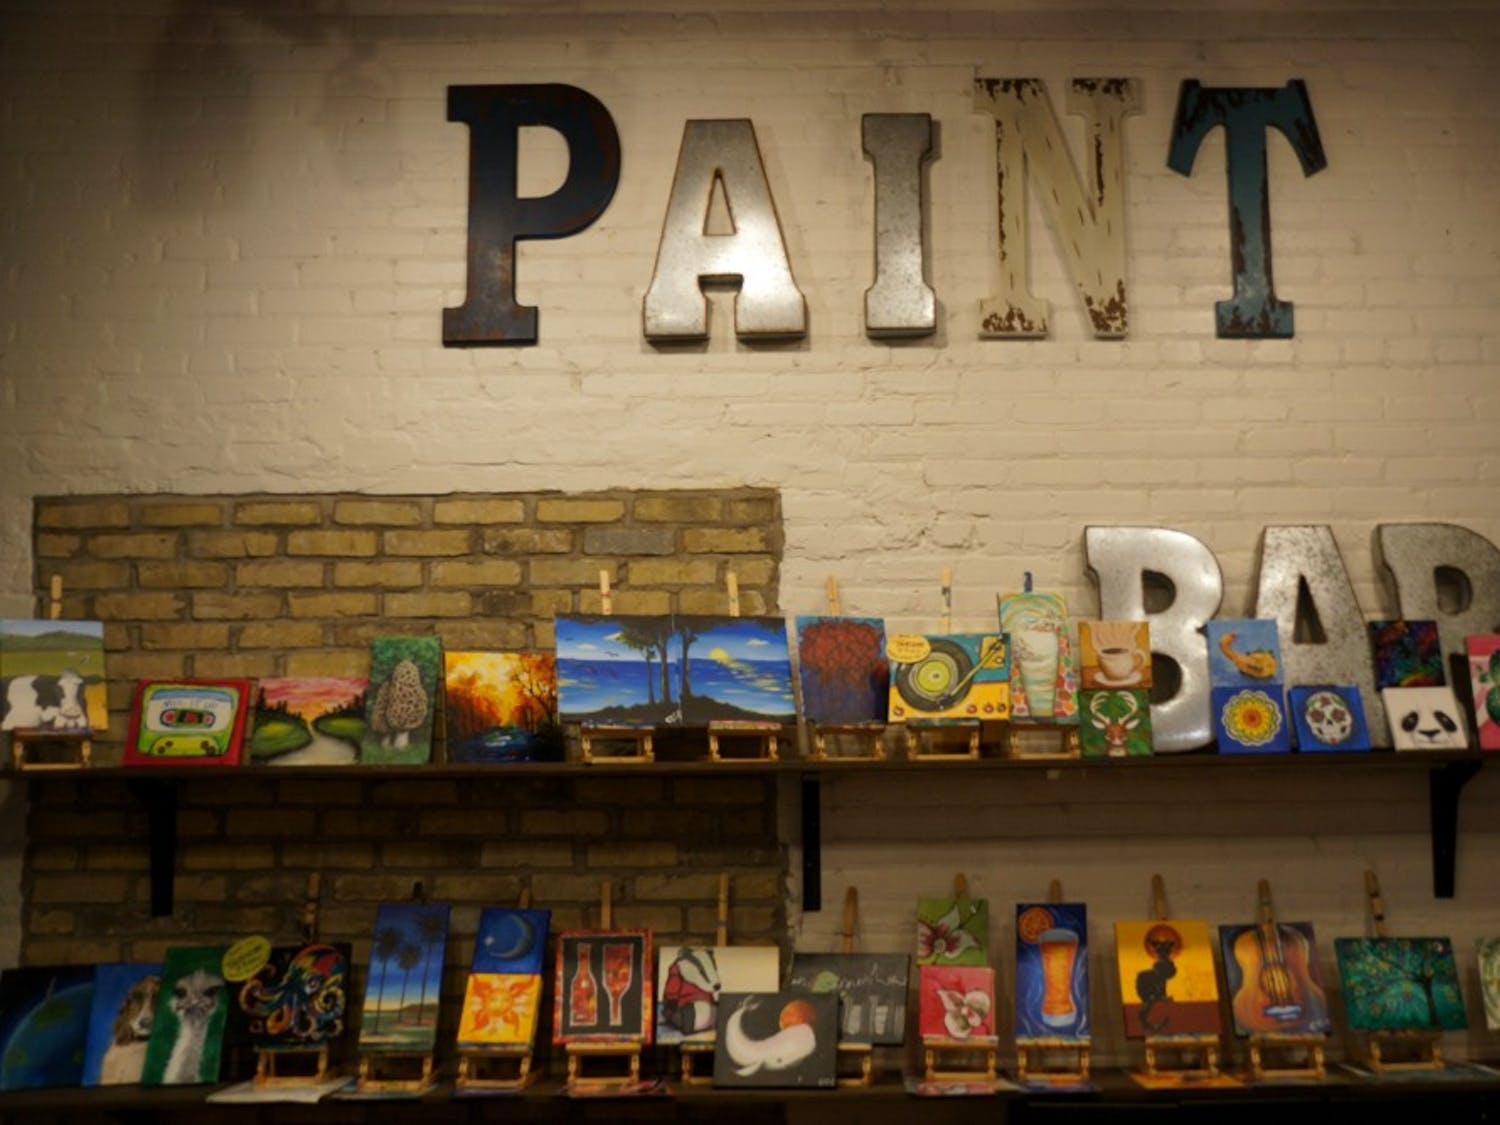 PaintBar offers many fun opportunities for visitors looking to showcase their art skills.